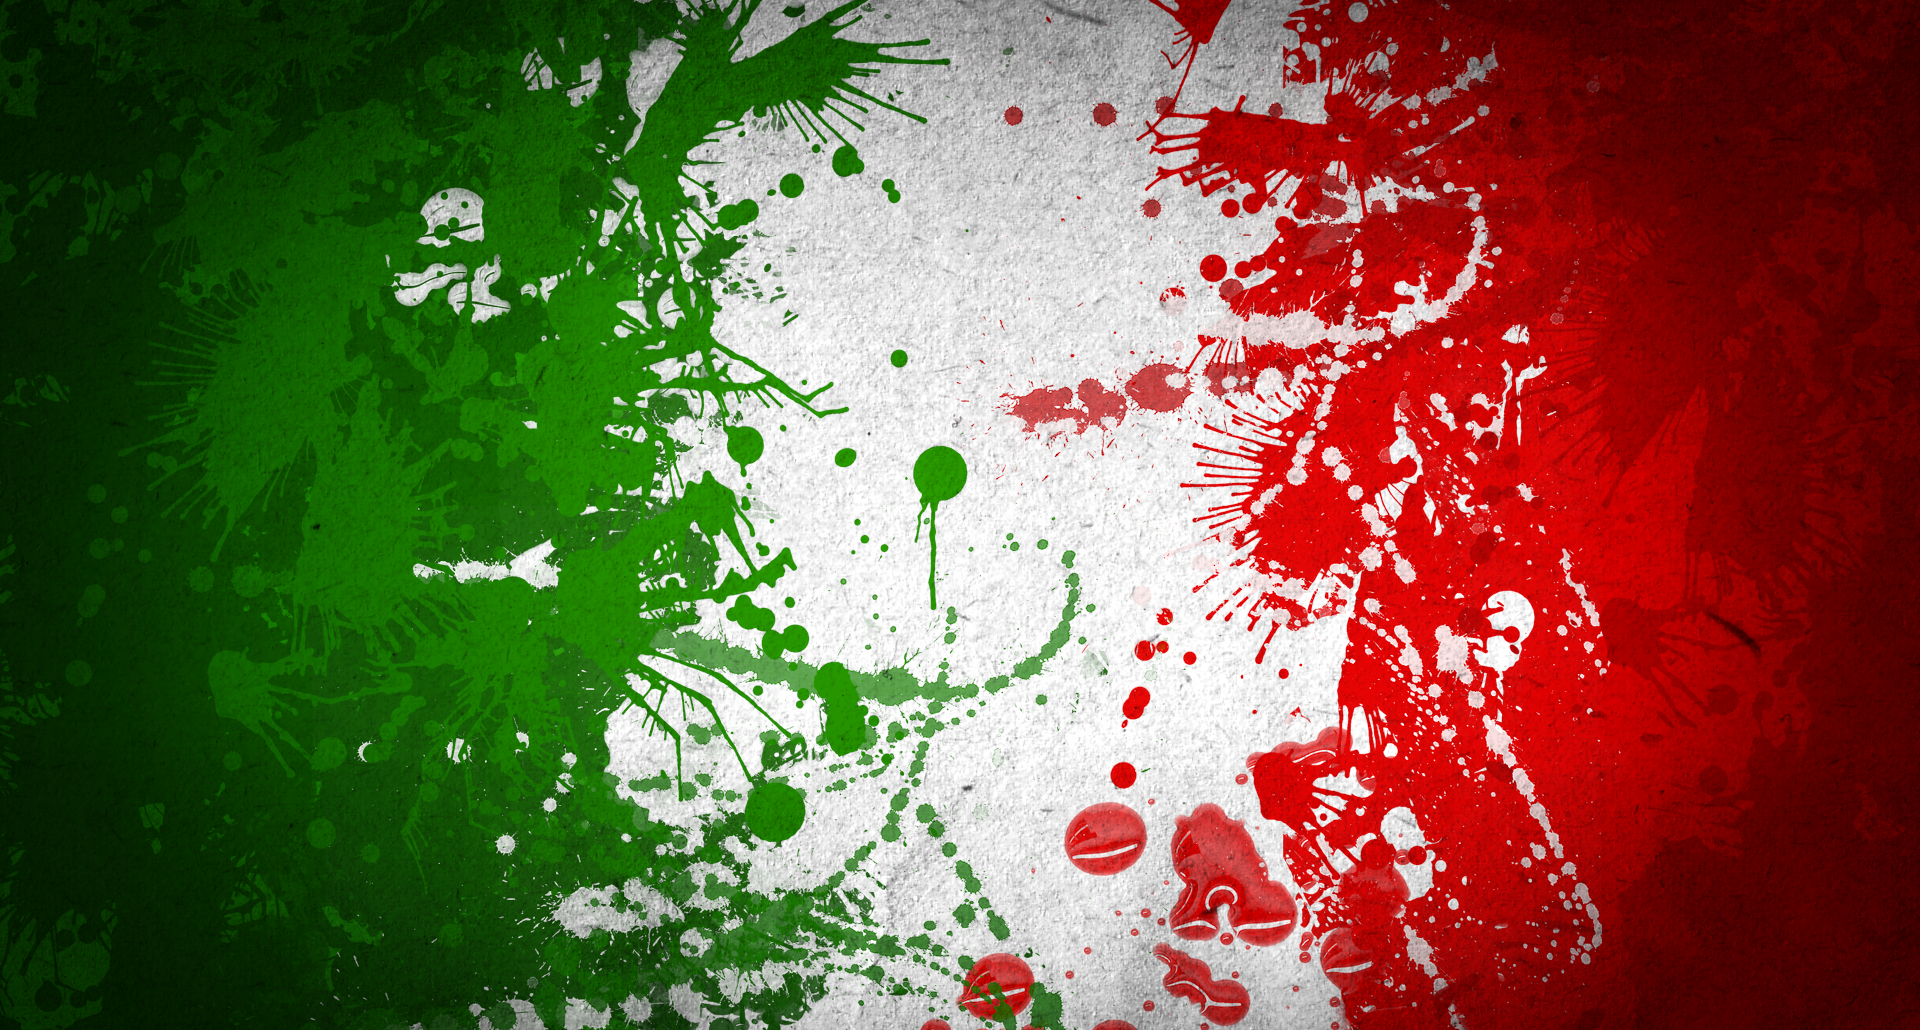 art italy wallpaper in high resolution for Get Flag art italy 1920x1030